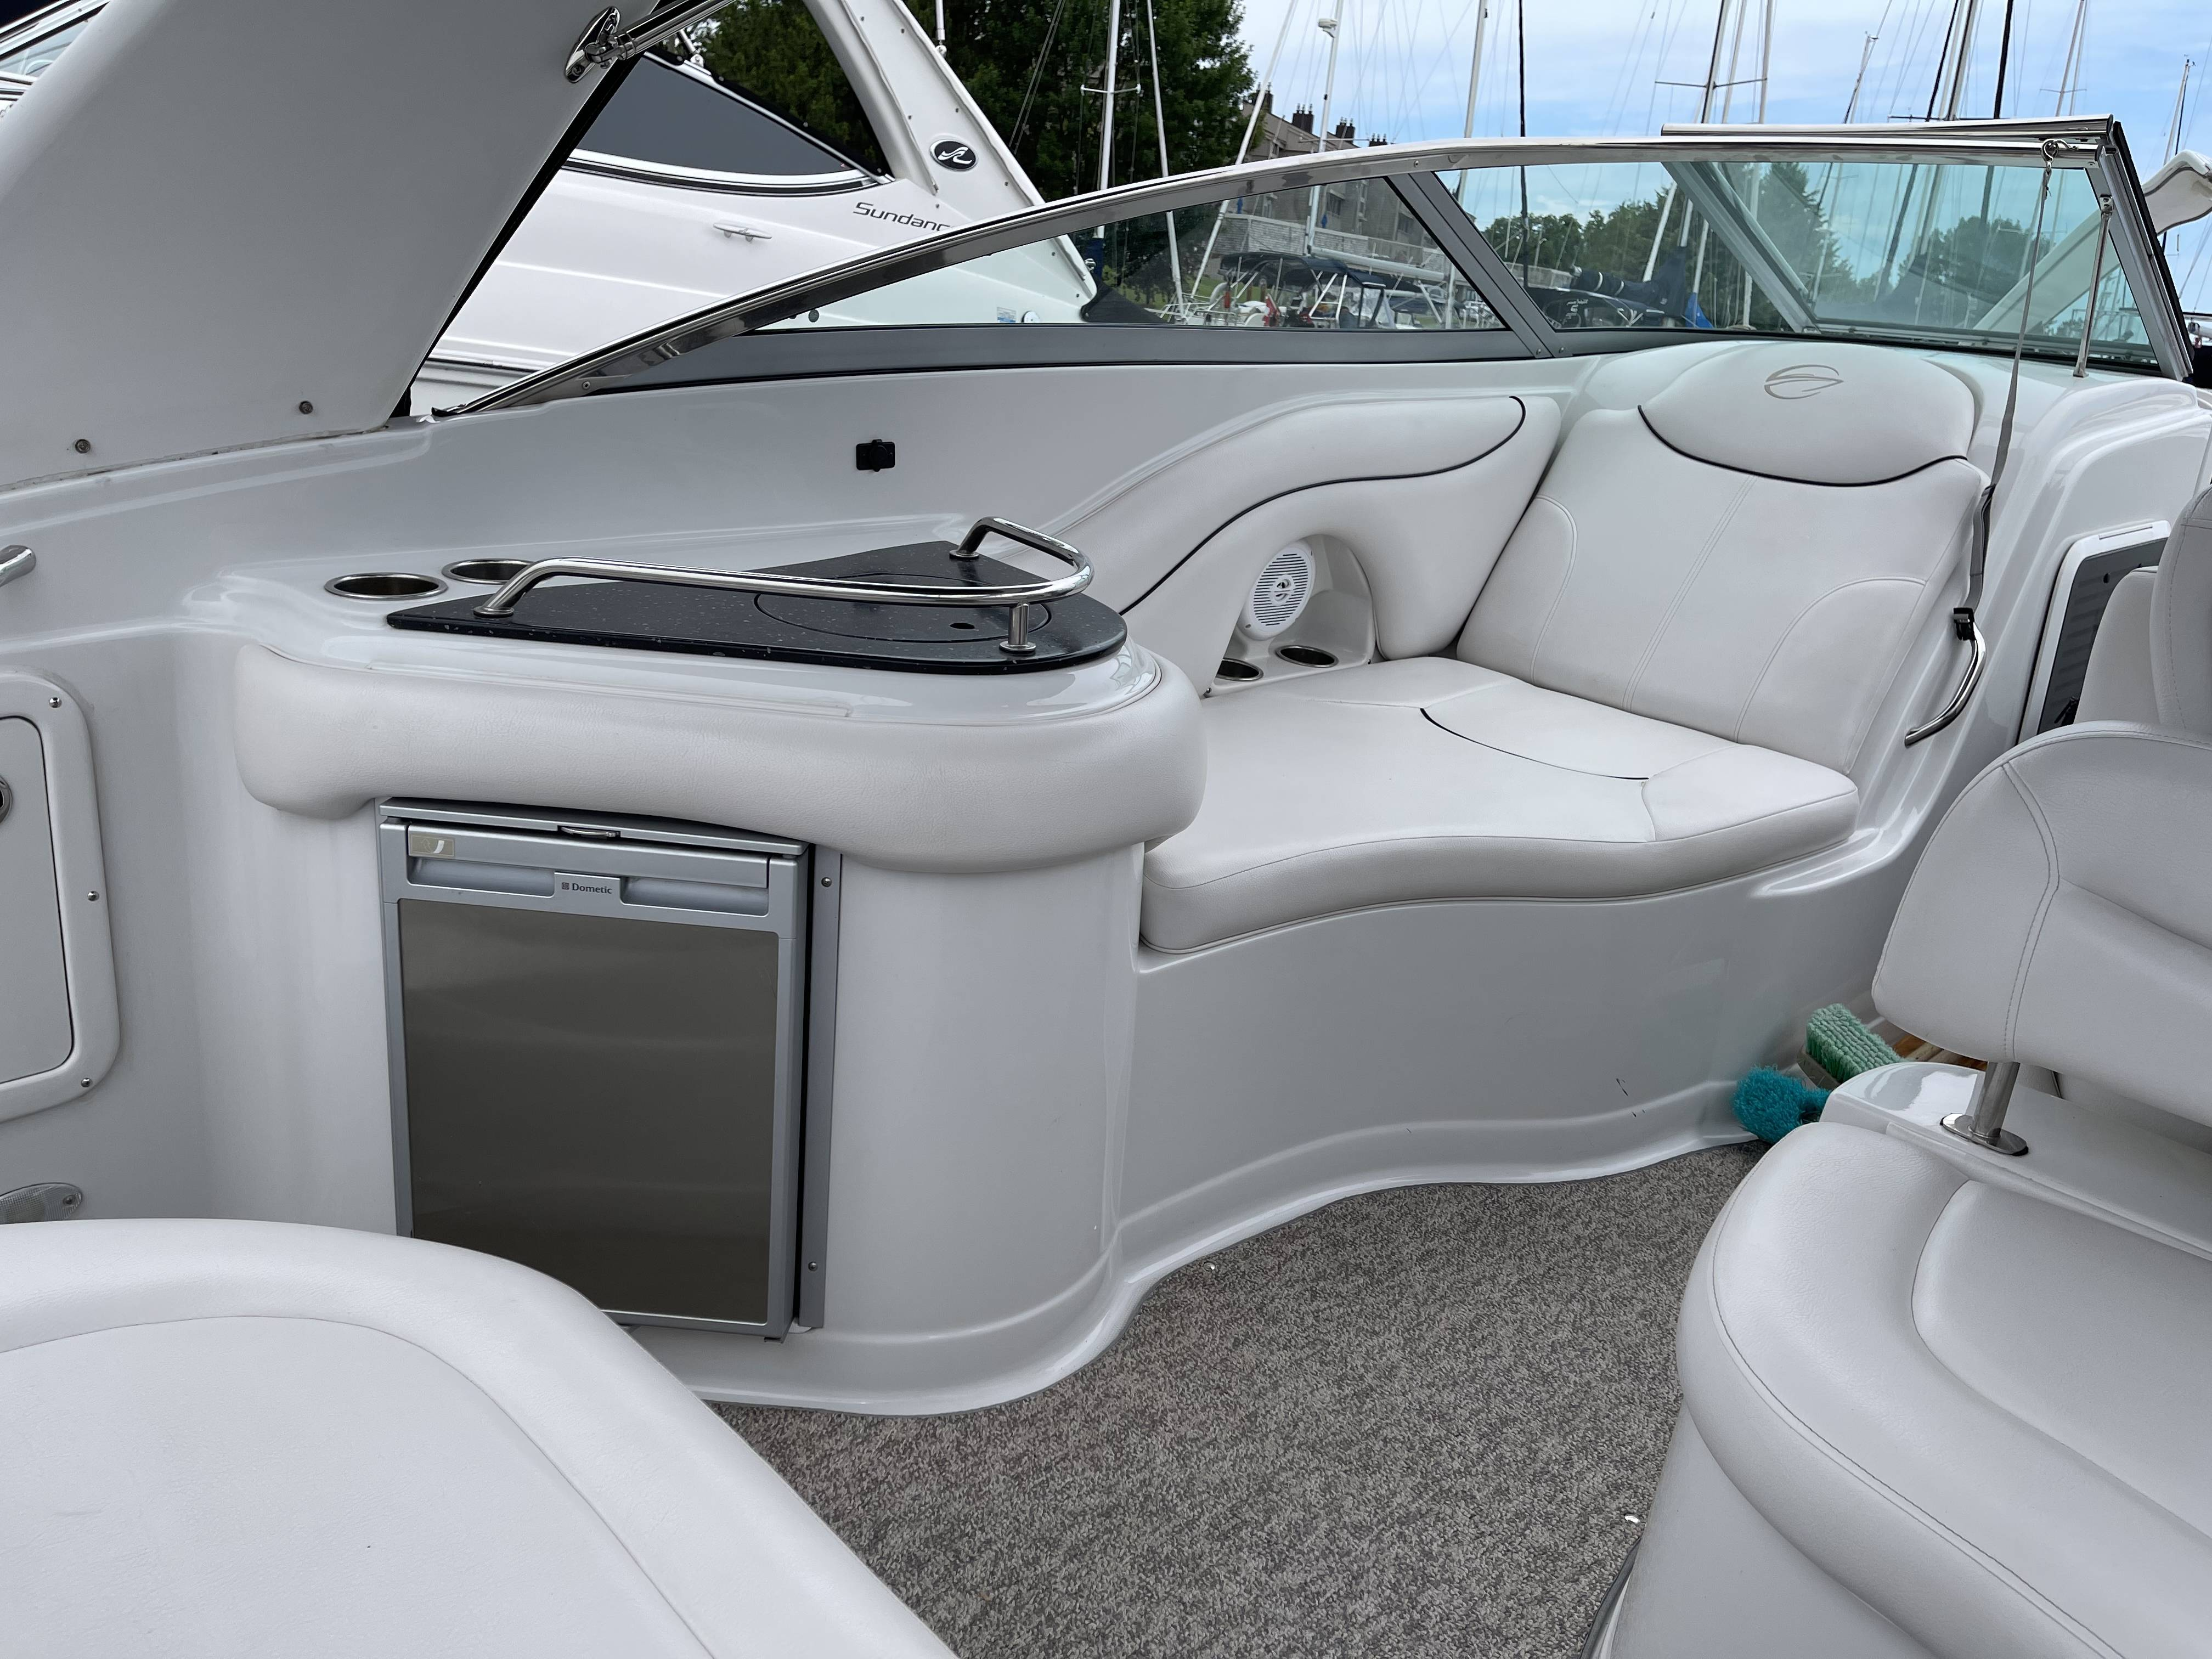 2011 Crownline boat for sale, model of the boat is 320 LS & Image # 25 of 55